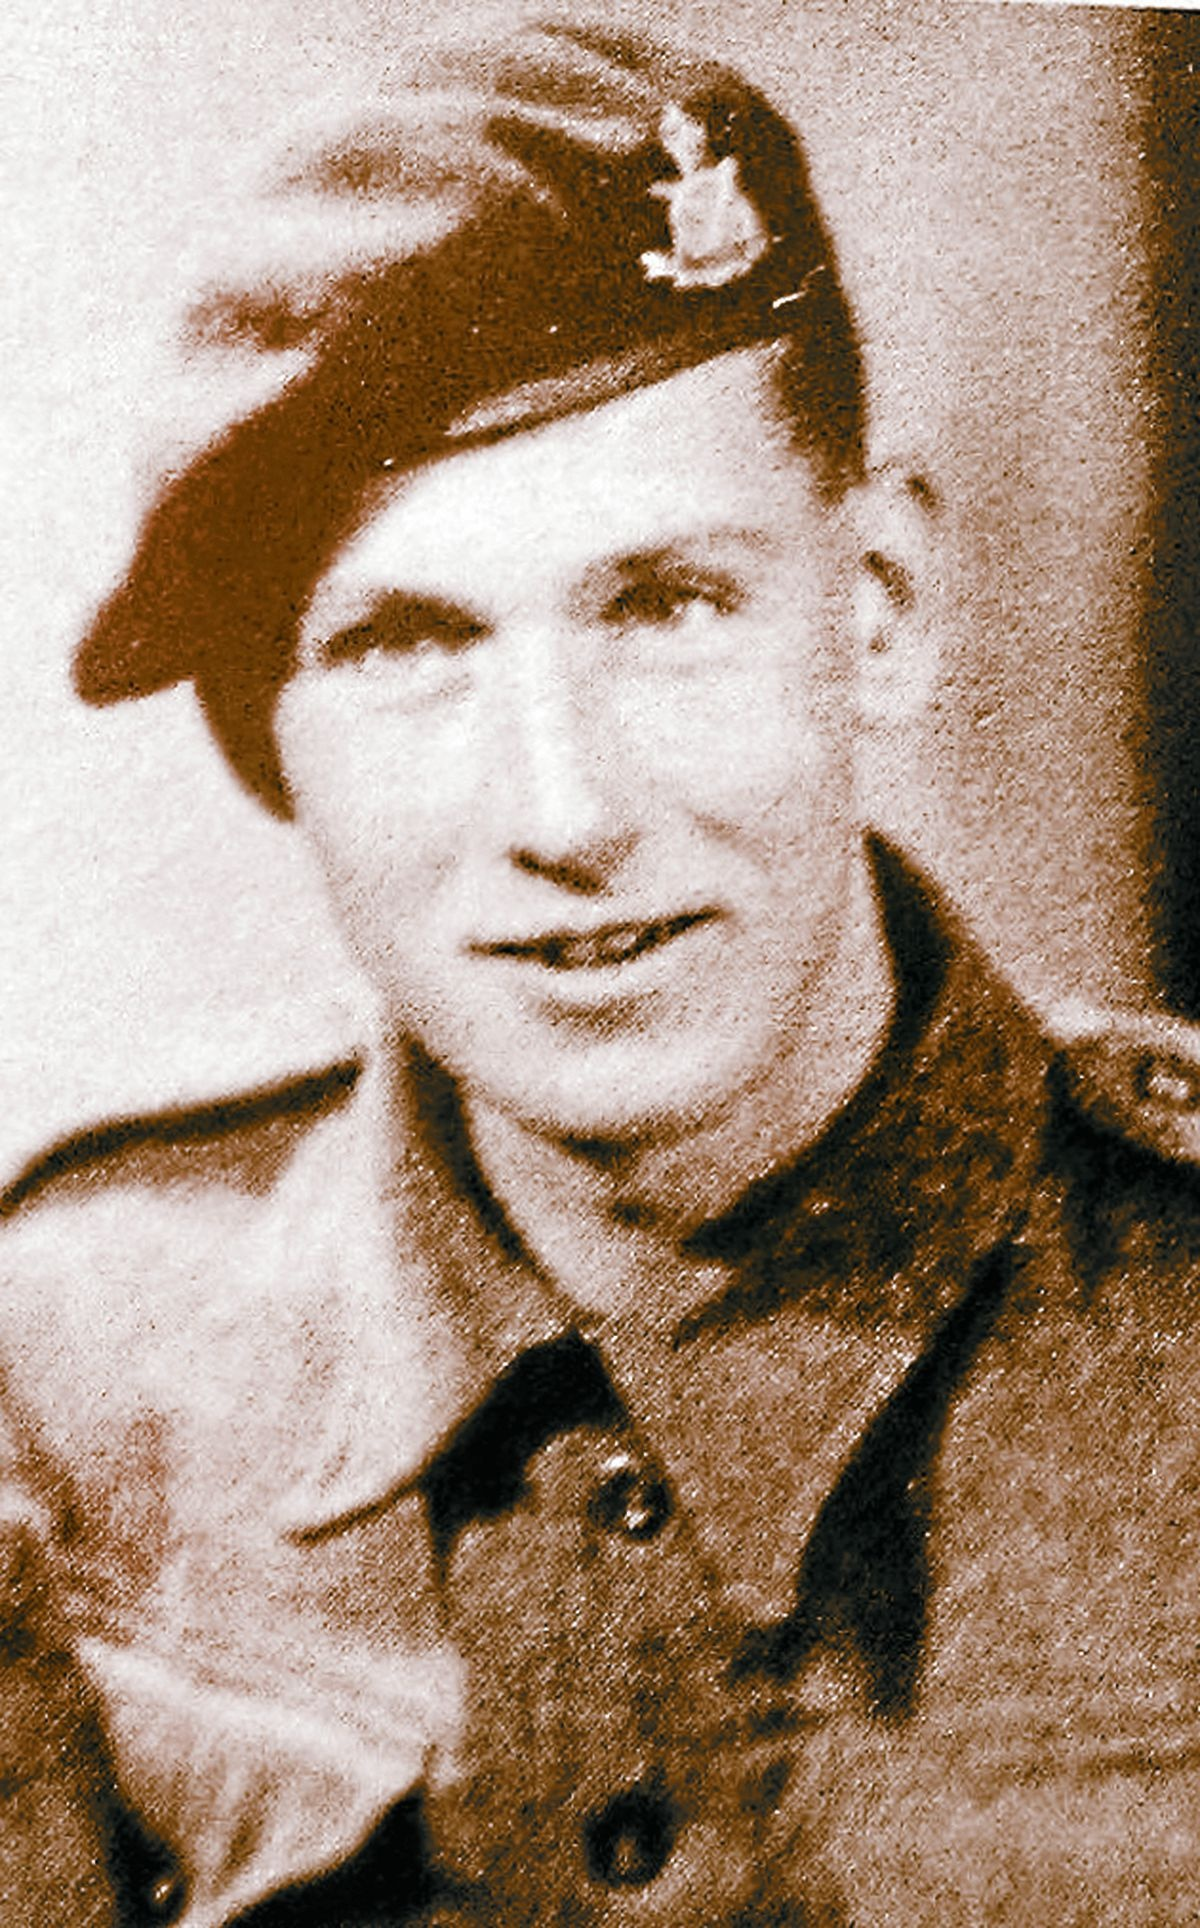 Tom Brewin in his forces days